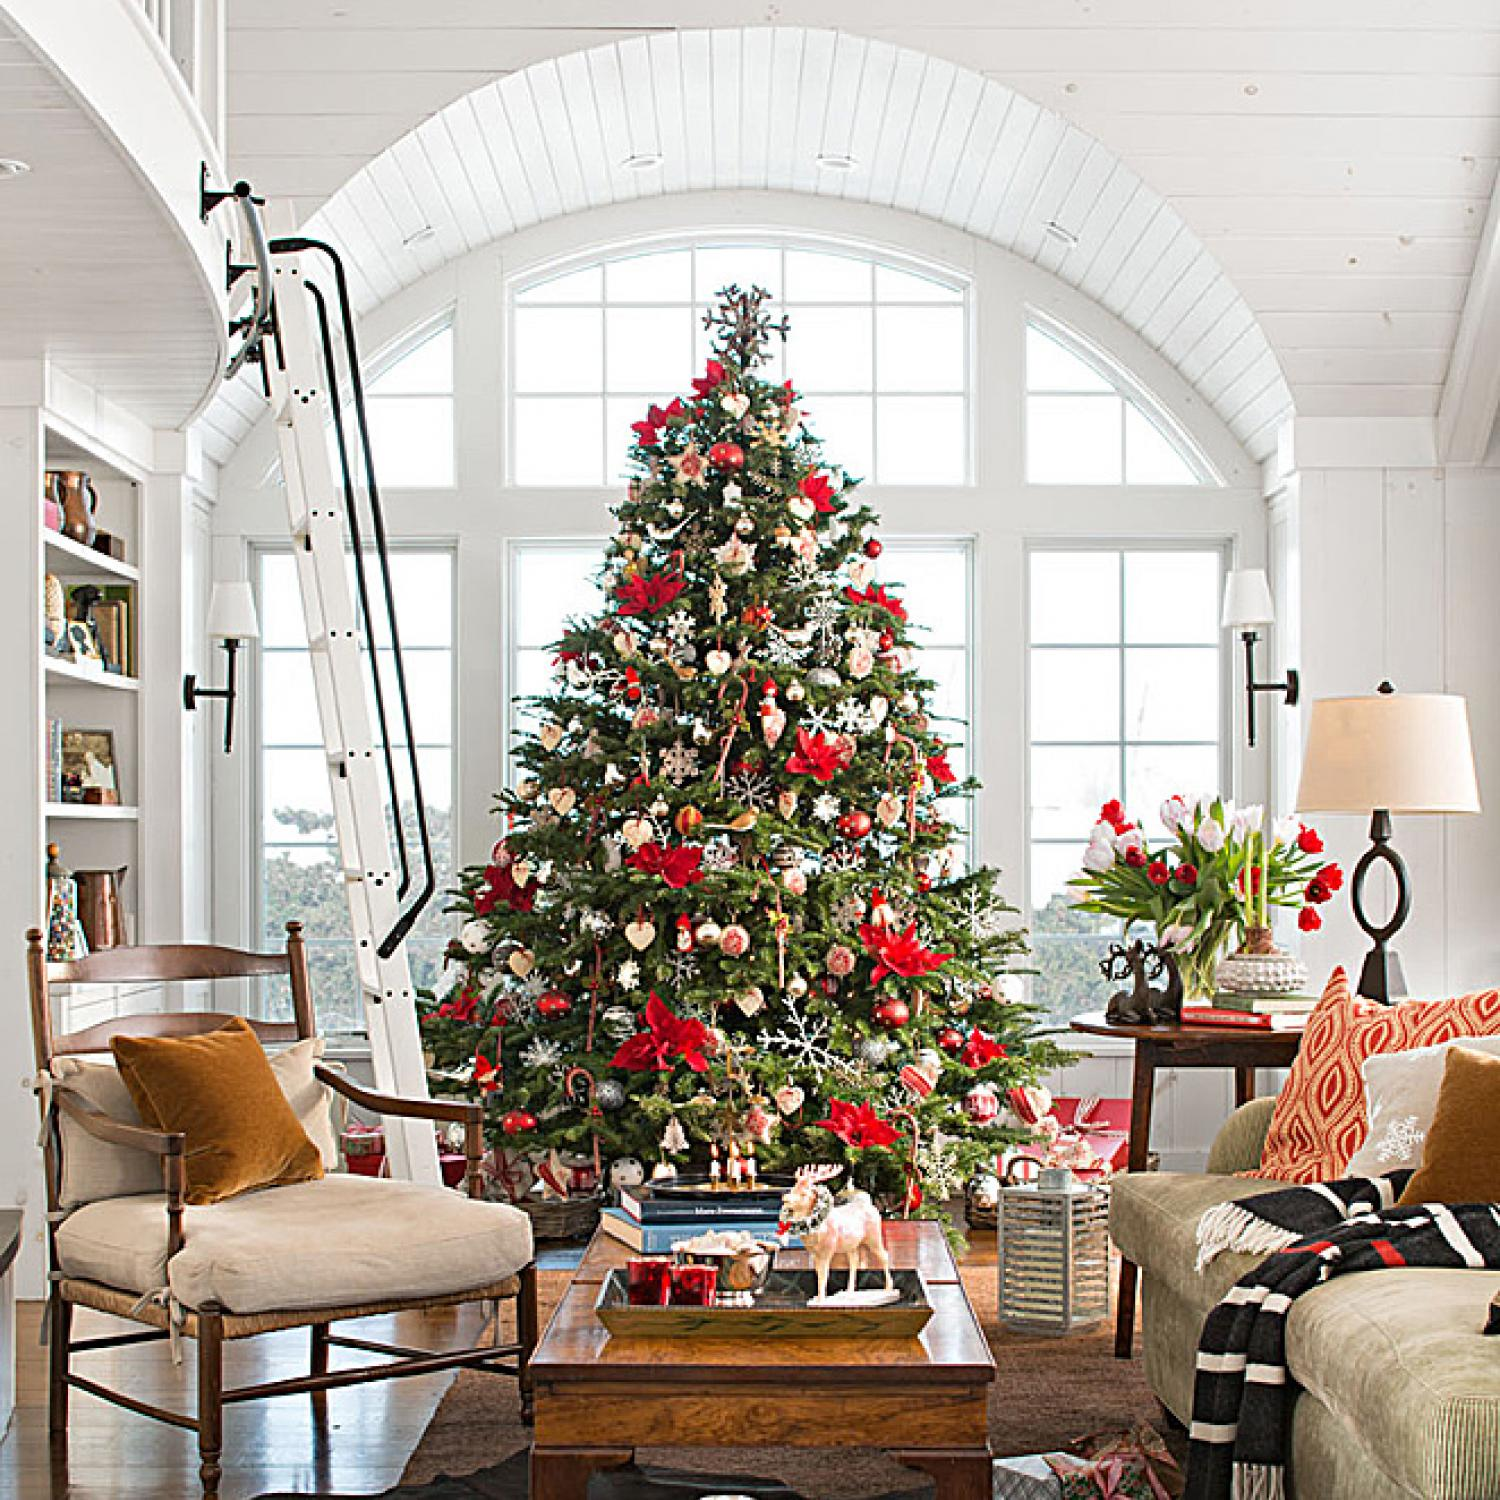 Houzify Home Design Ideas: Snowy Vermont Home Ready For Christmas